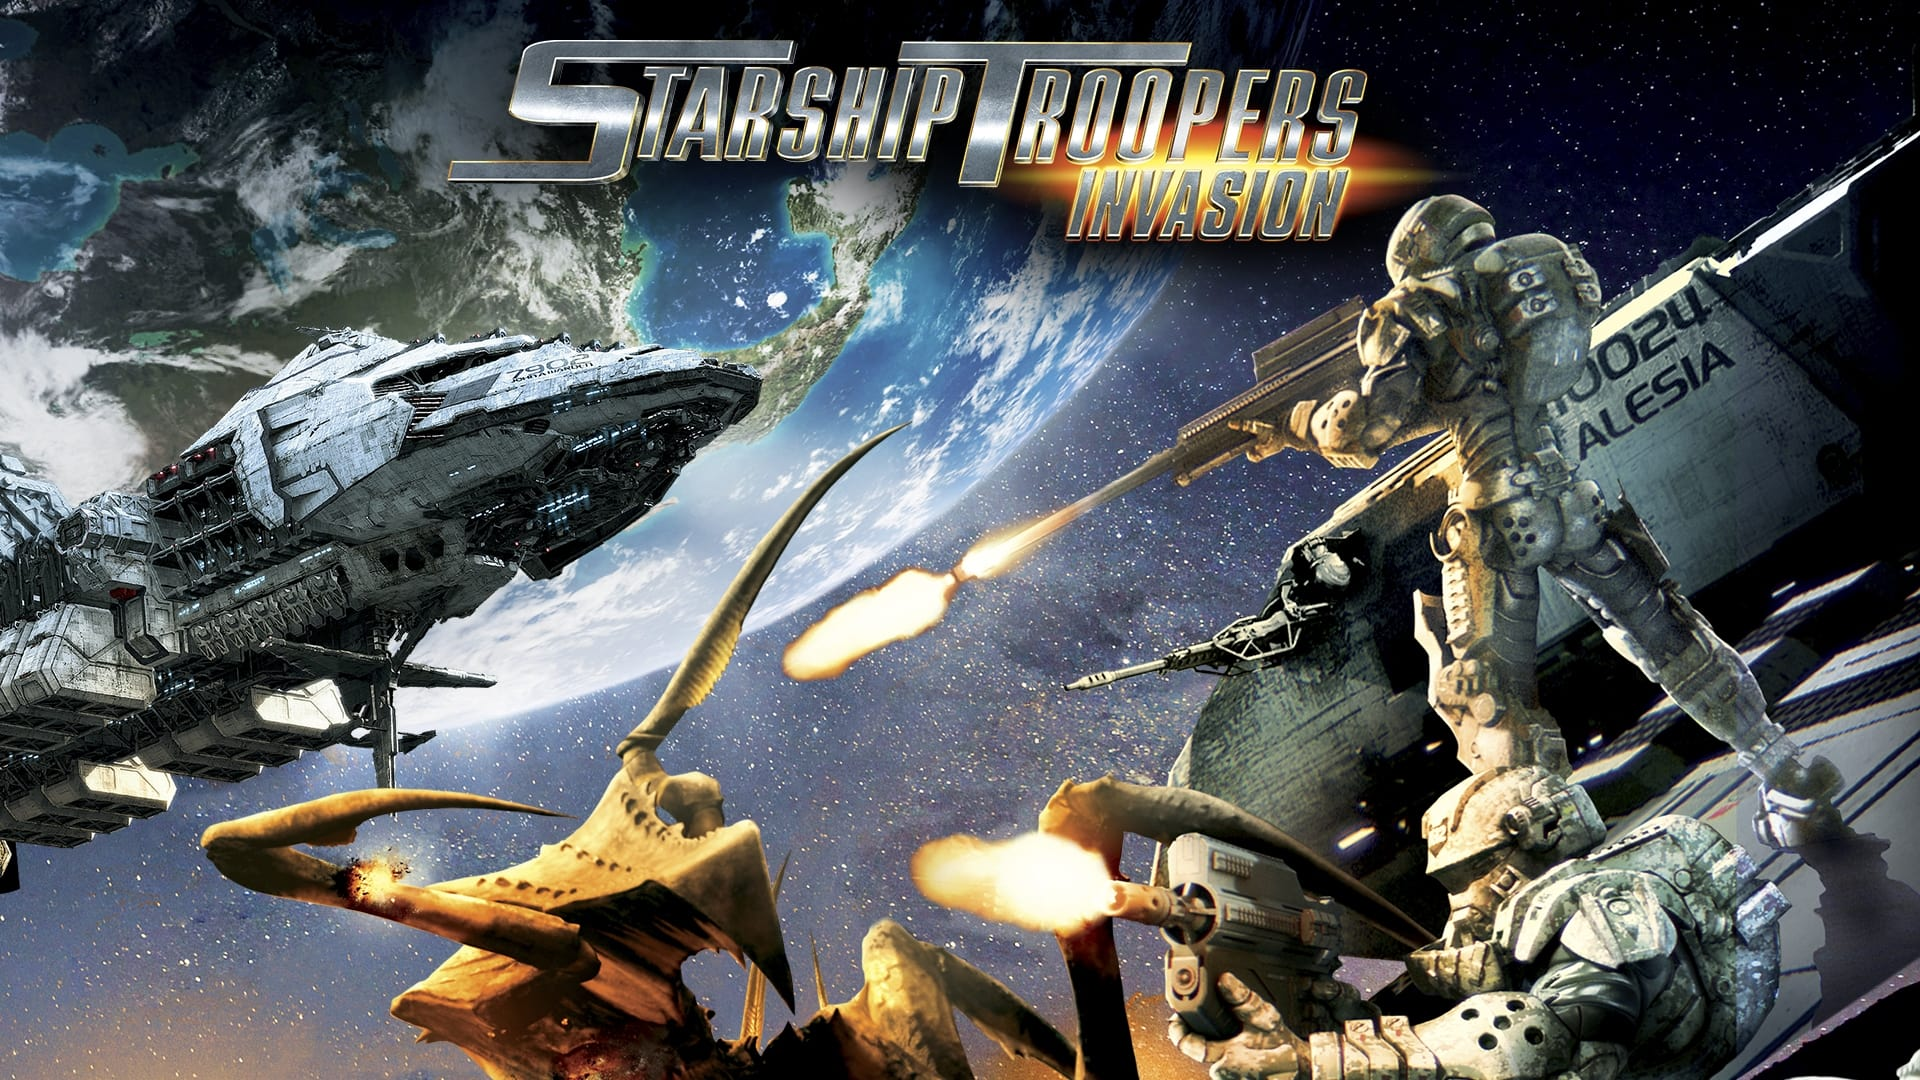 Starship Troopers - L'invasione (2012)